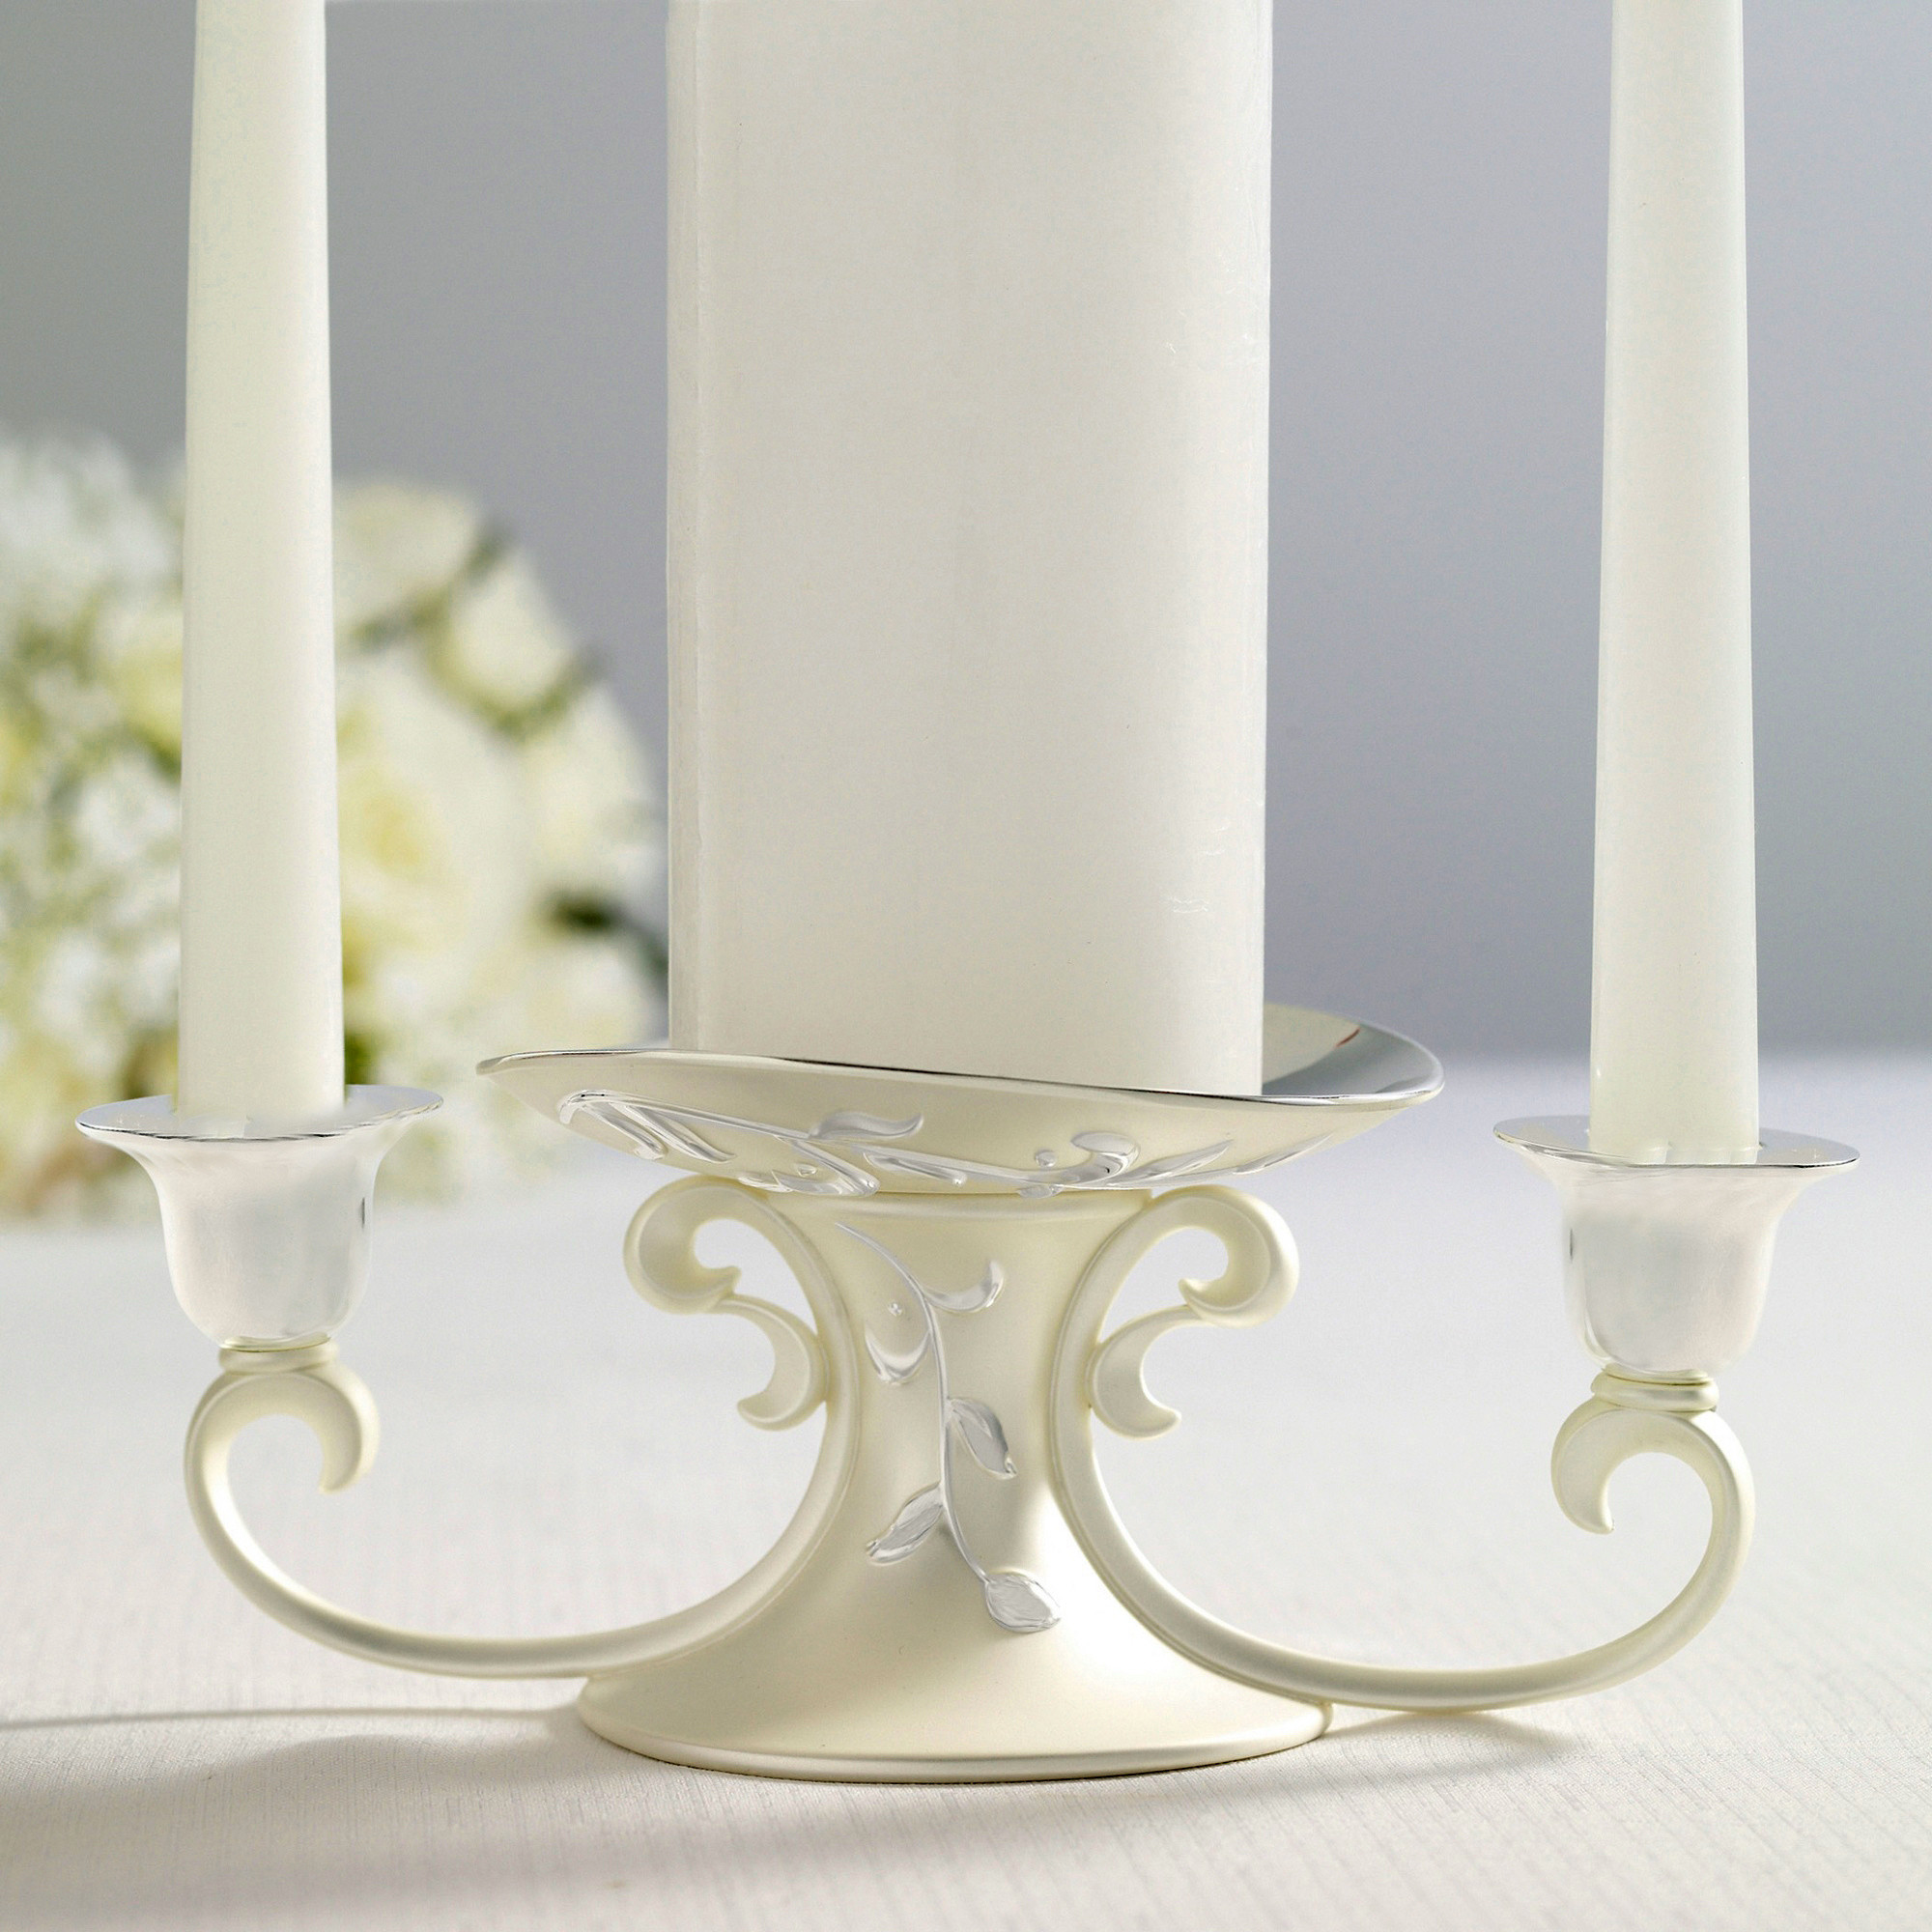 opal innocence unity candle holder lenox candleholder set